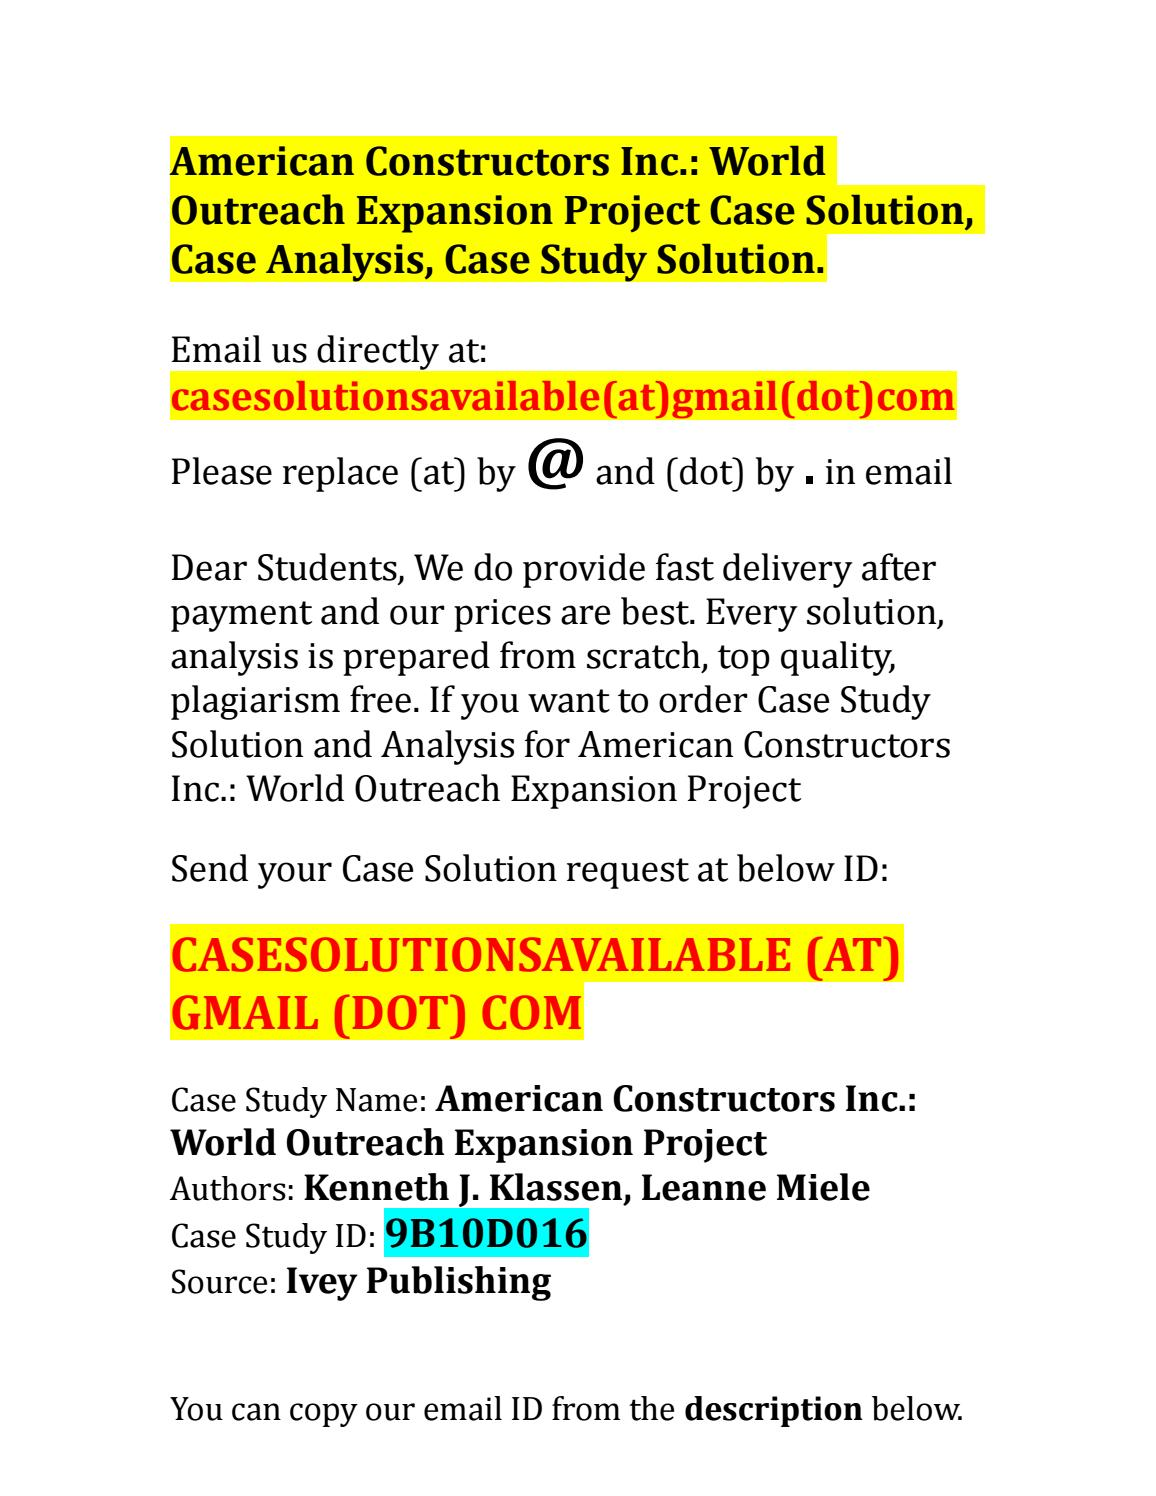 the jacobs division case solution Operations and supply chain management 14th edition solutions manual test bank 3-1 operations and supply chain management 14th edition solutions manual by f robert jacobs solutions manual, answer key for all chapters, map to harvard cases are included.